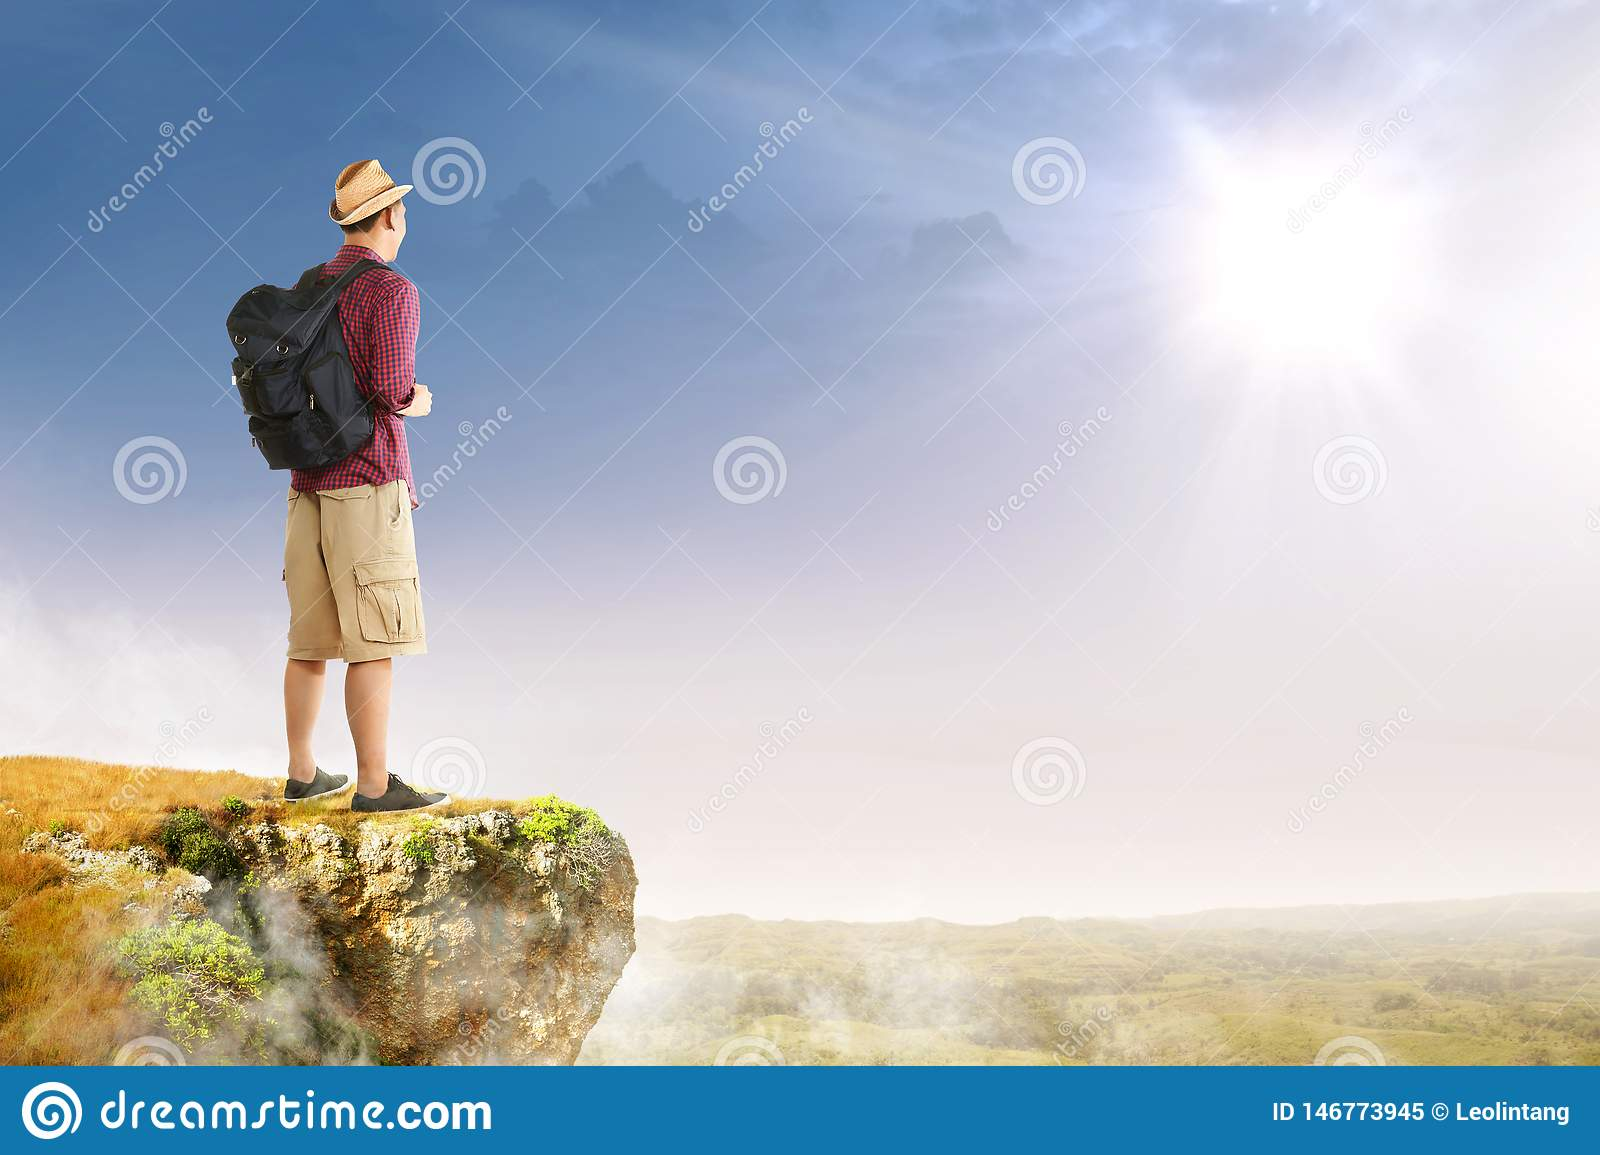 Rear view of asian traveler man with hat and backpack standing on the edge of cliff looking at landscapes